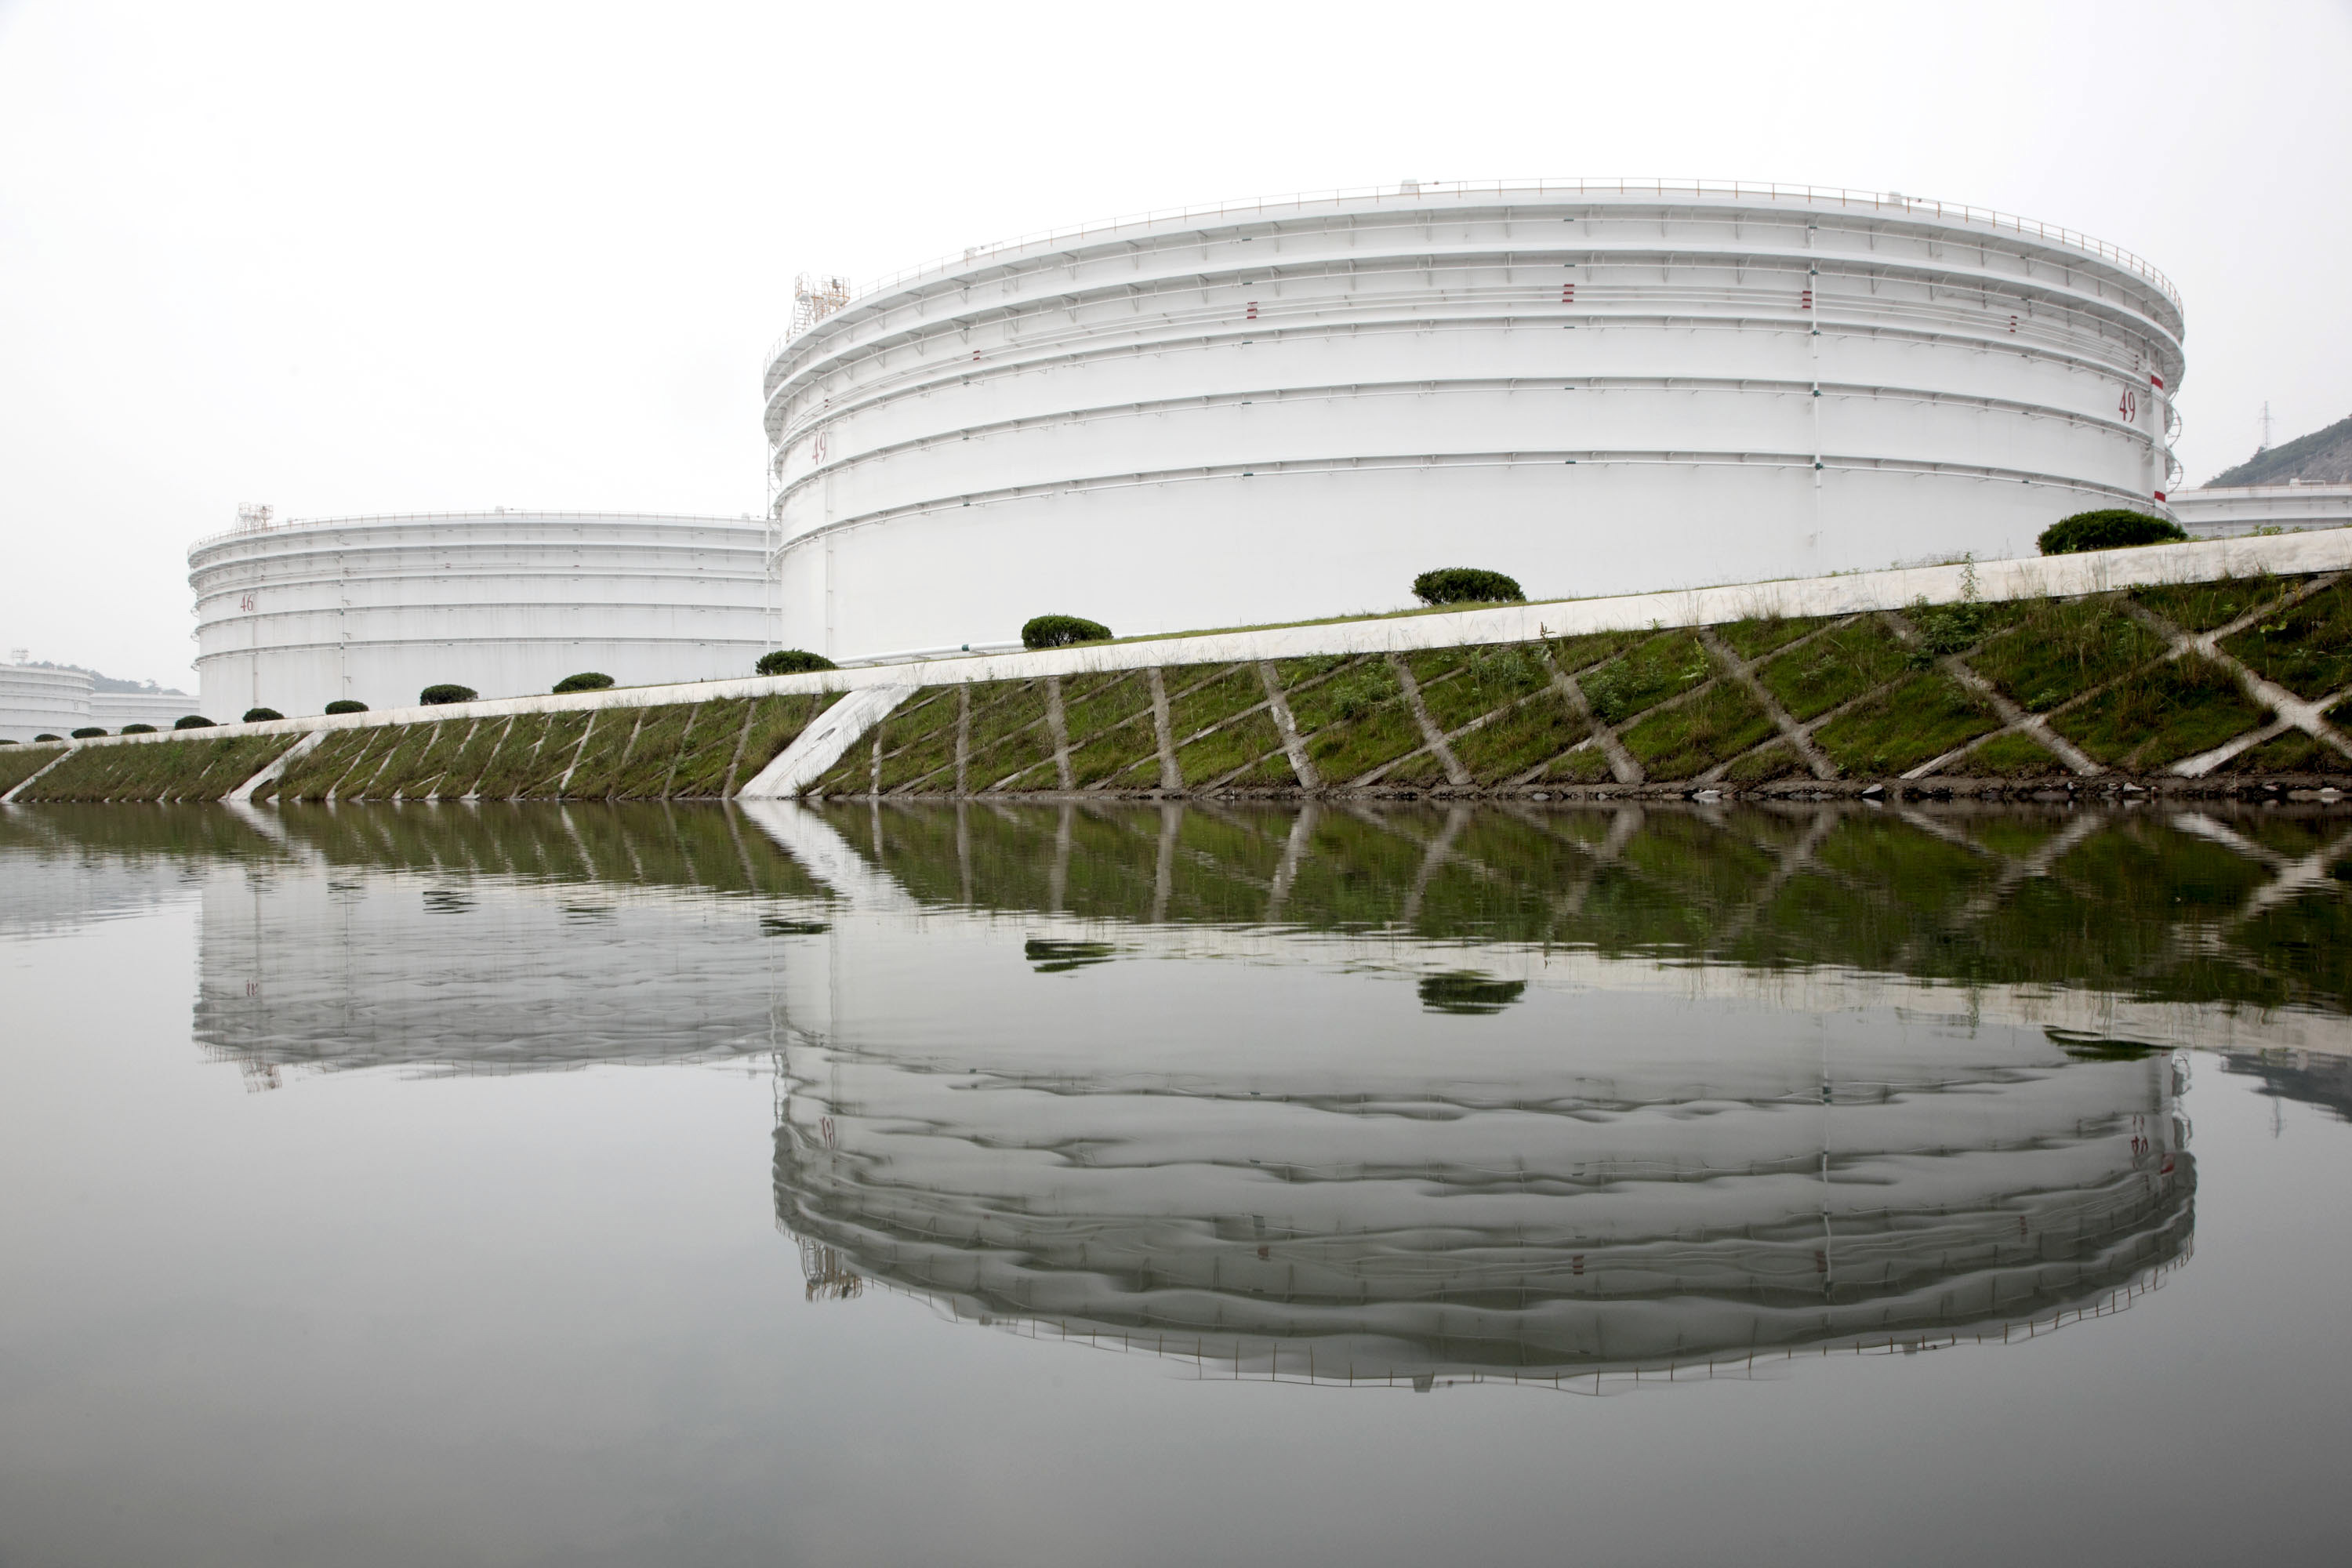 Storage tanks stand in China's strategic oil reserve complex in Zhoushan, Jiangsu province, China, on Wednesday, June 3, 2009.  Photographer: QILAI SHEN/ Bloomberg